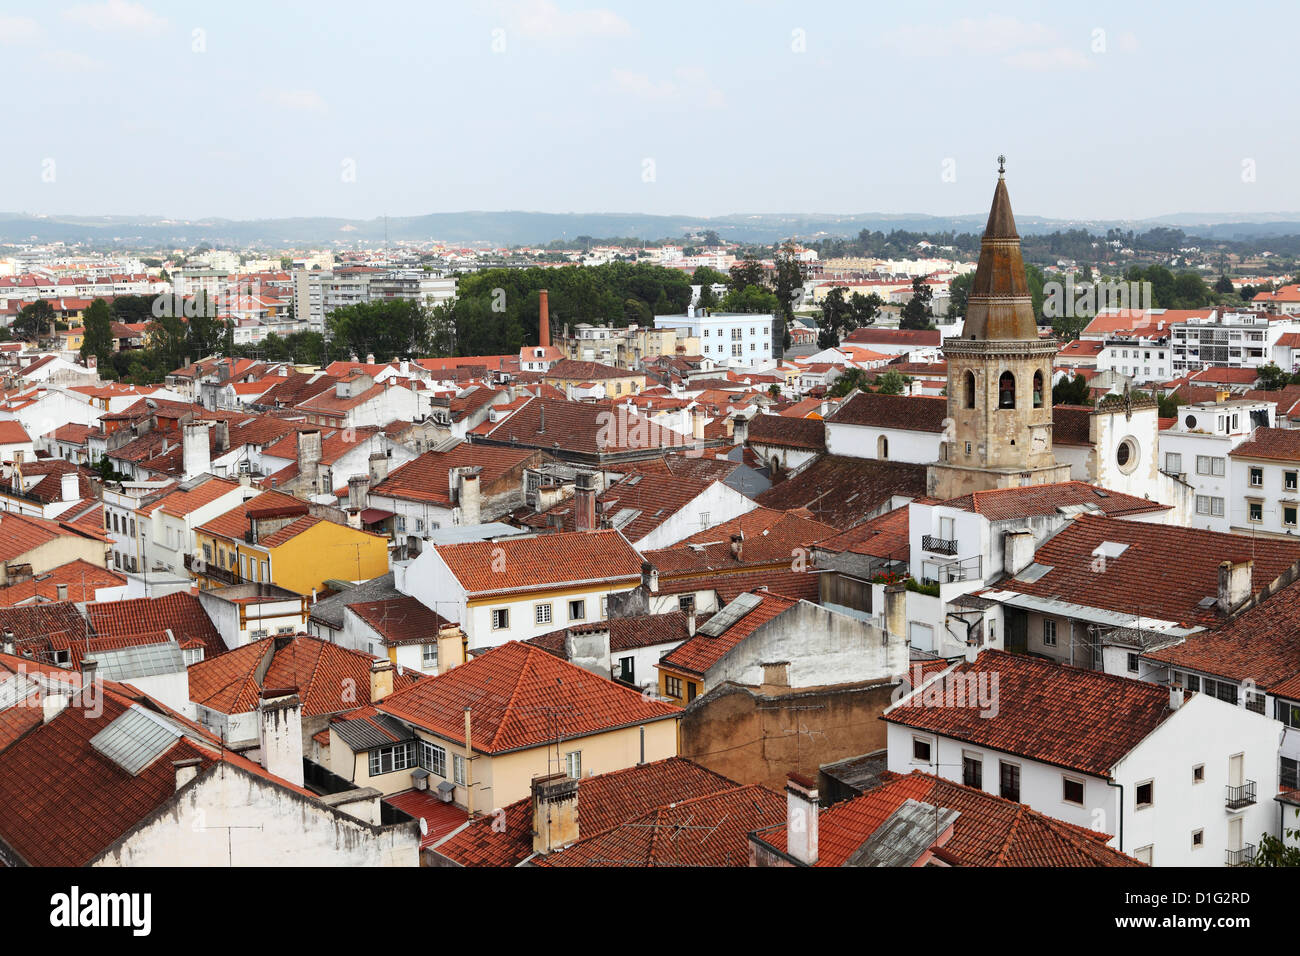 Roofs and the octagonal spire of the Church of St. John the Baptist (Sao Joao Baptista) in the city of Tomar, Ribatejo, - Stock Image